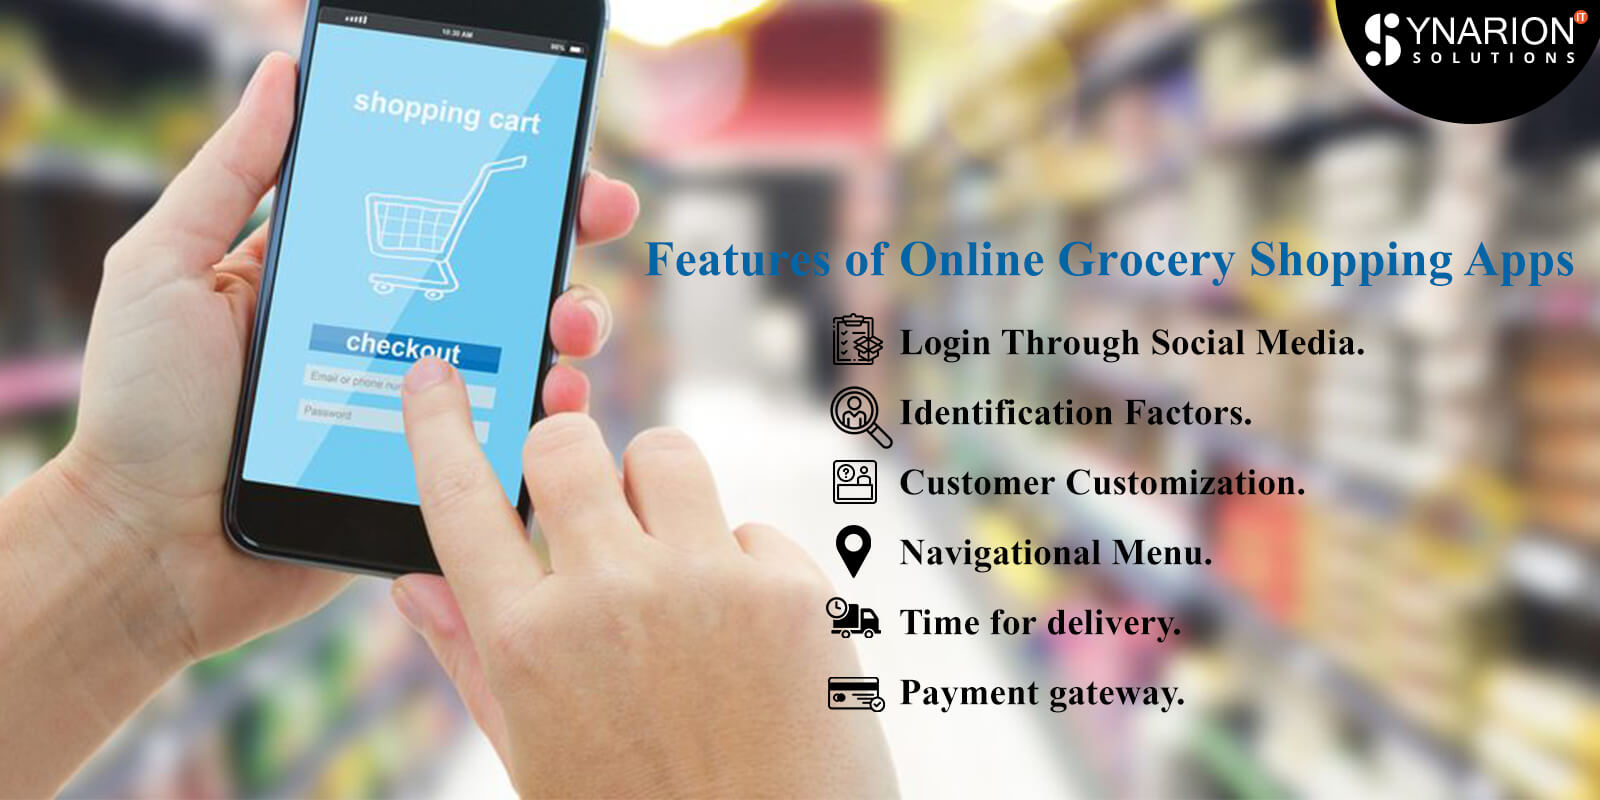 Features of Online Grocery Shopping Apps